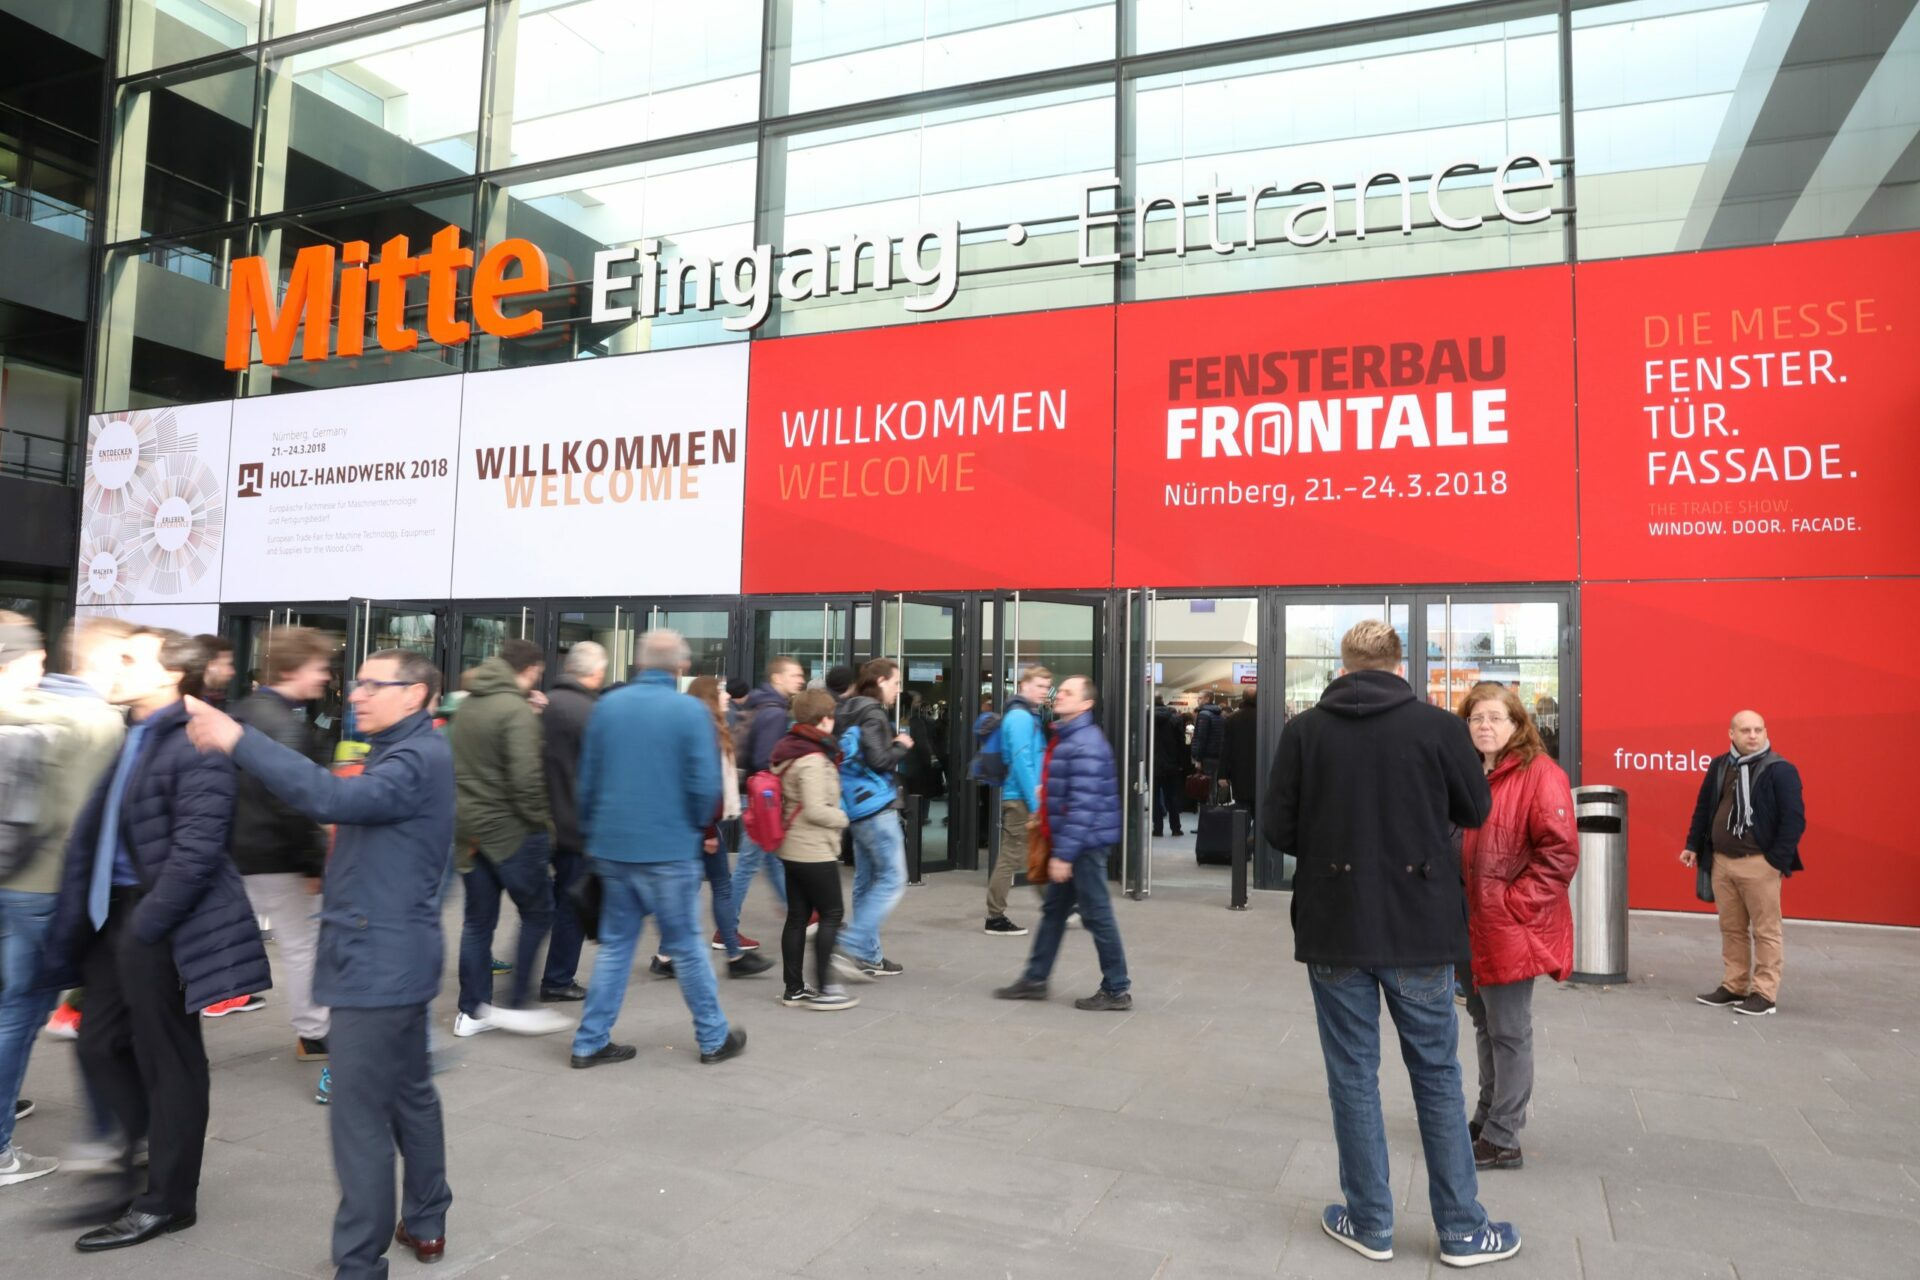 fensterbau frontale creative resins limited scaled